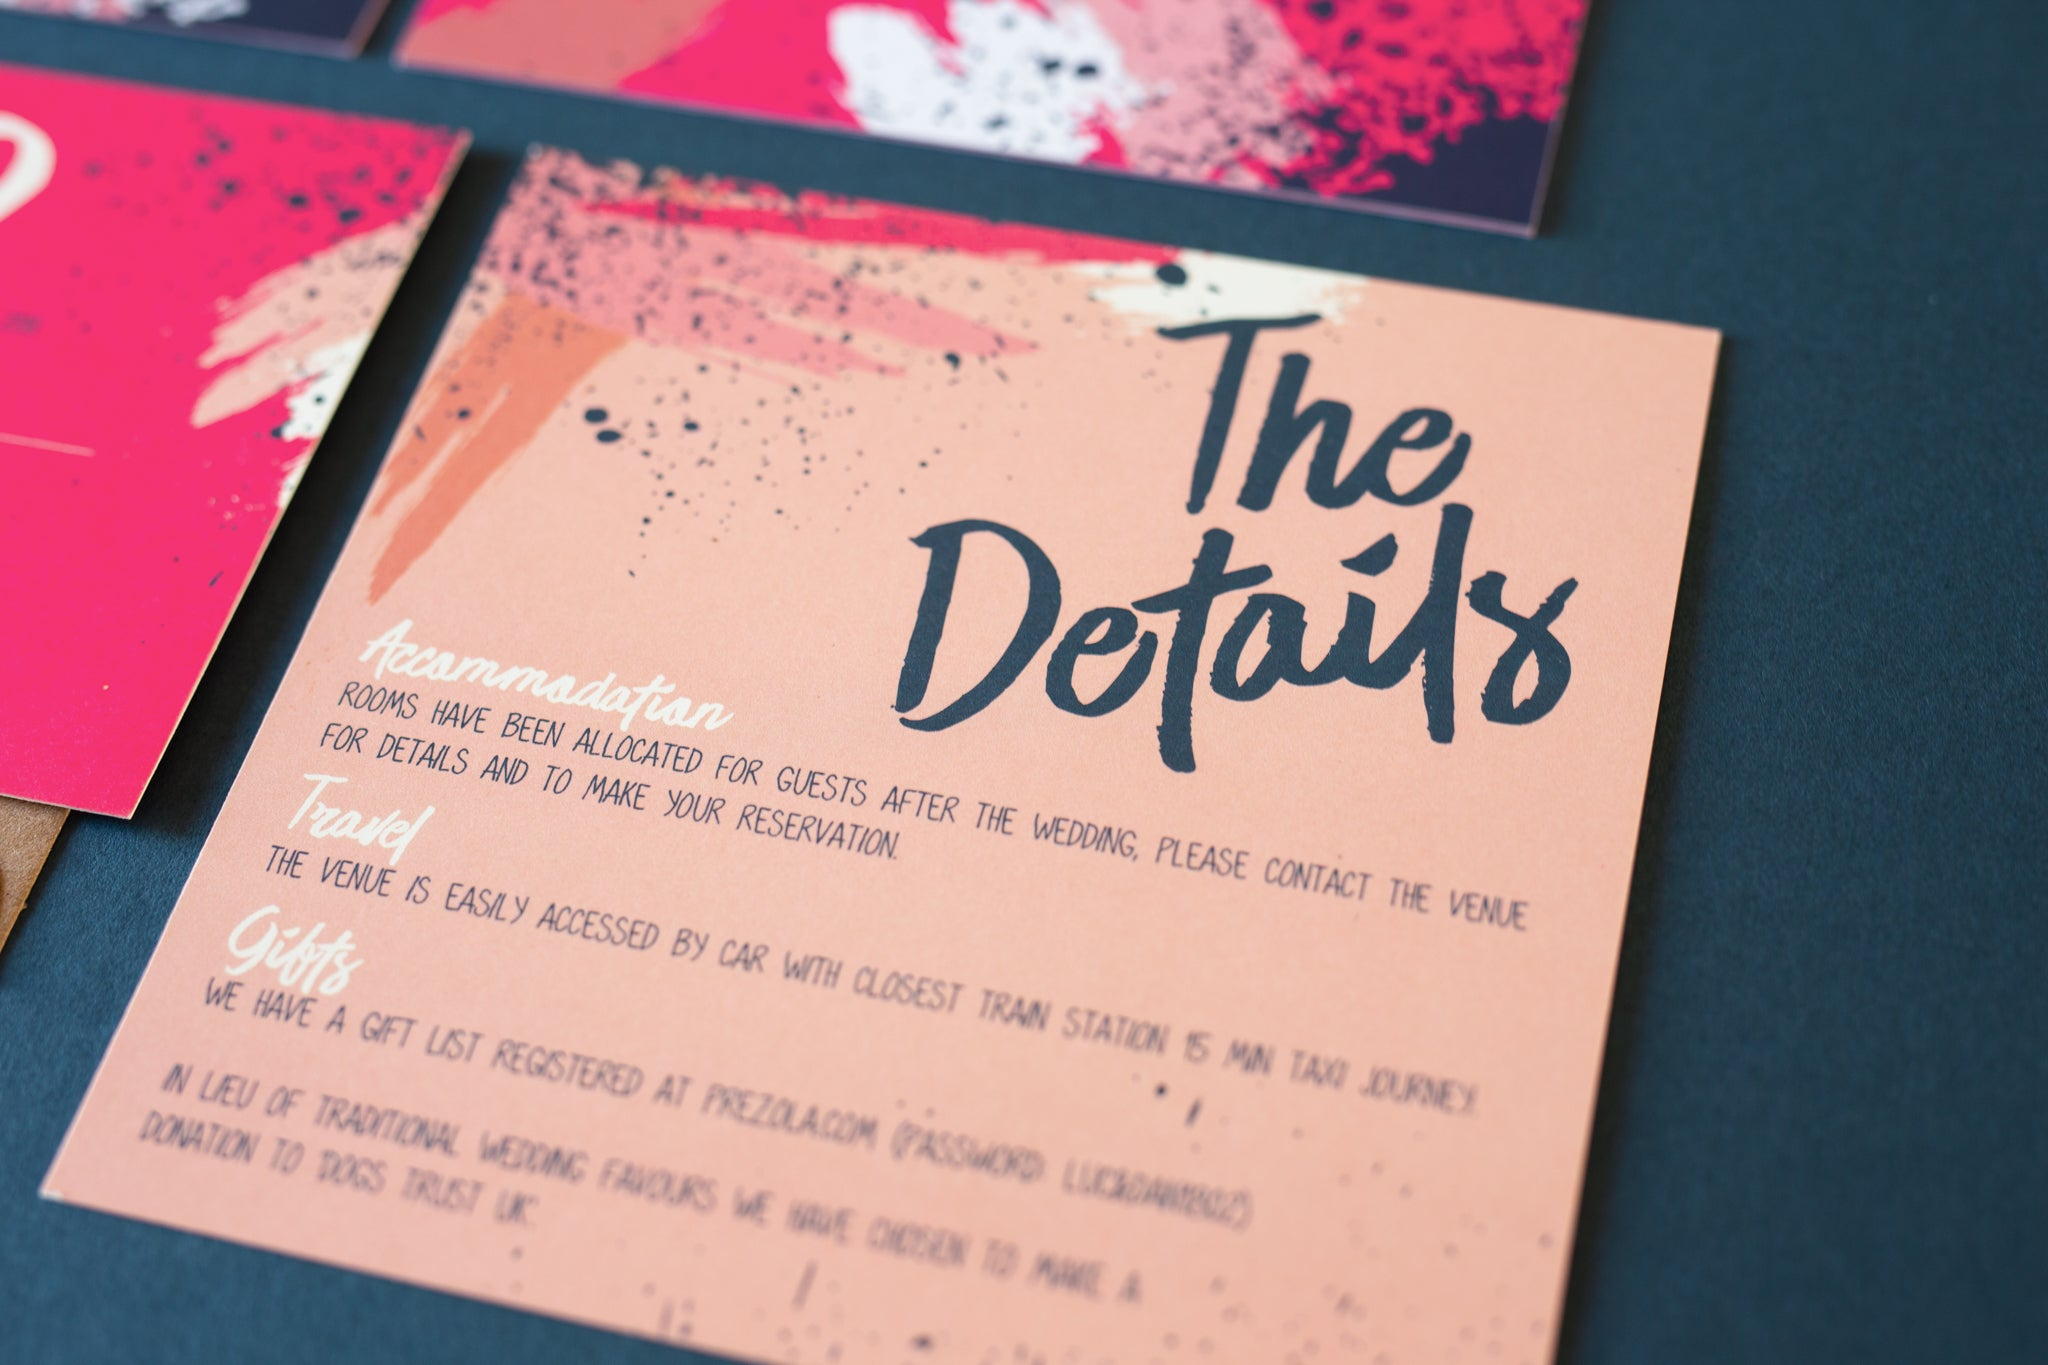 Peach pink wedding details card with pink splatter contemporary design.